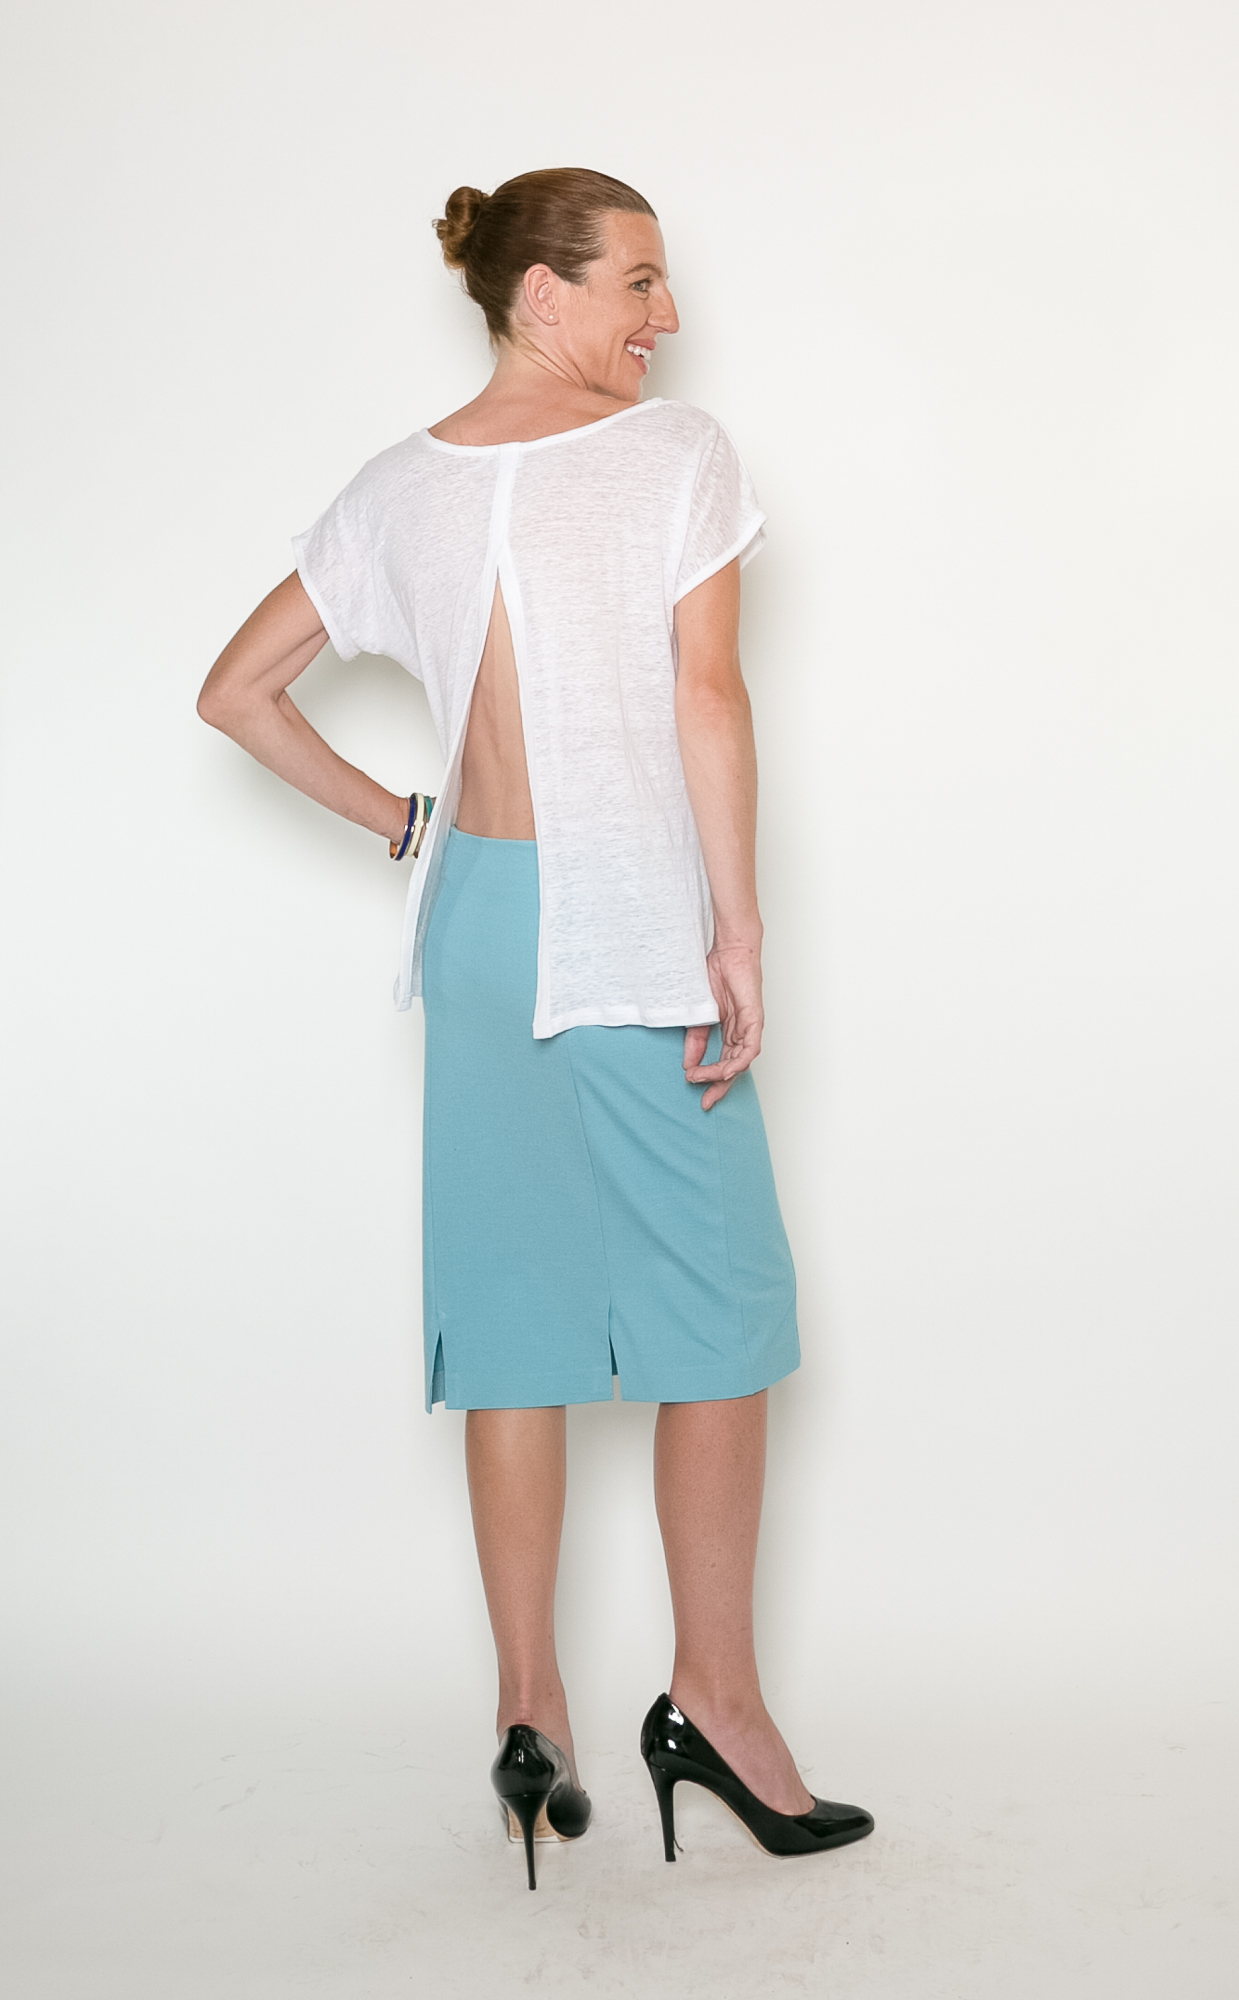 Contemplative Top + Emergent Skirt